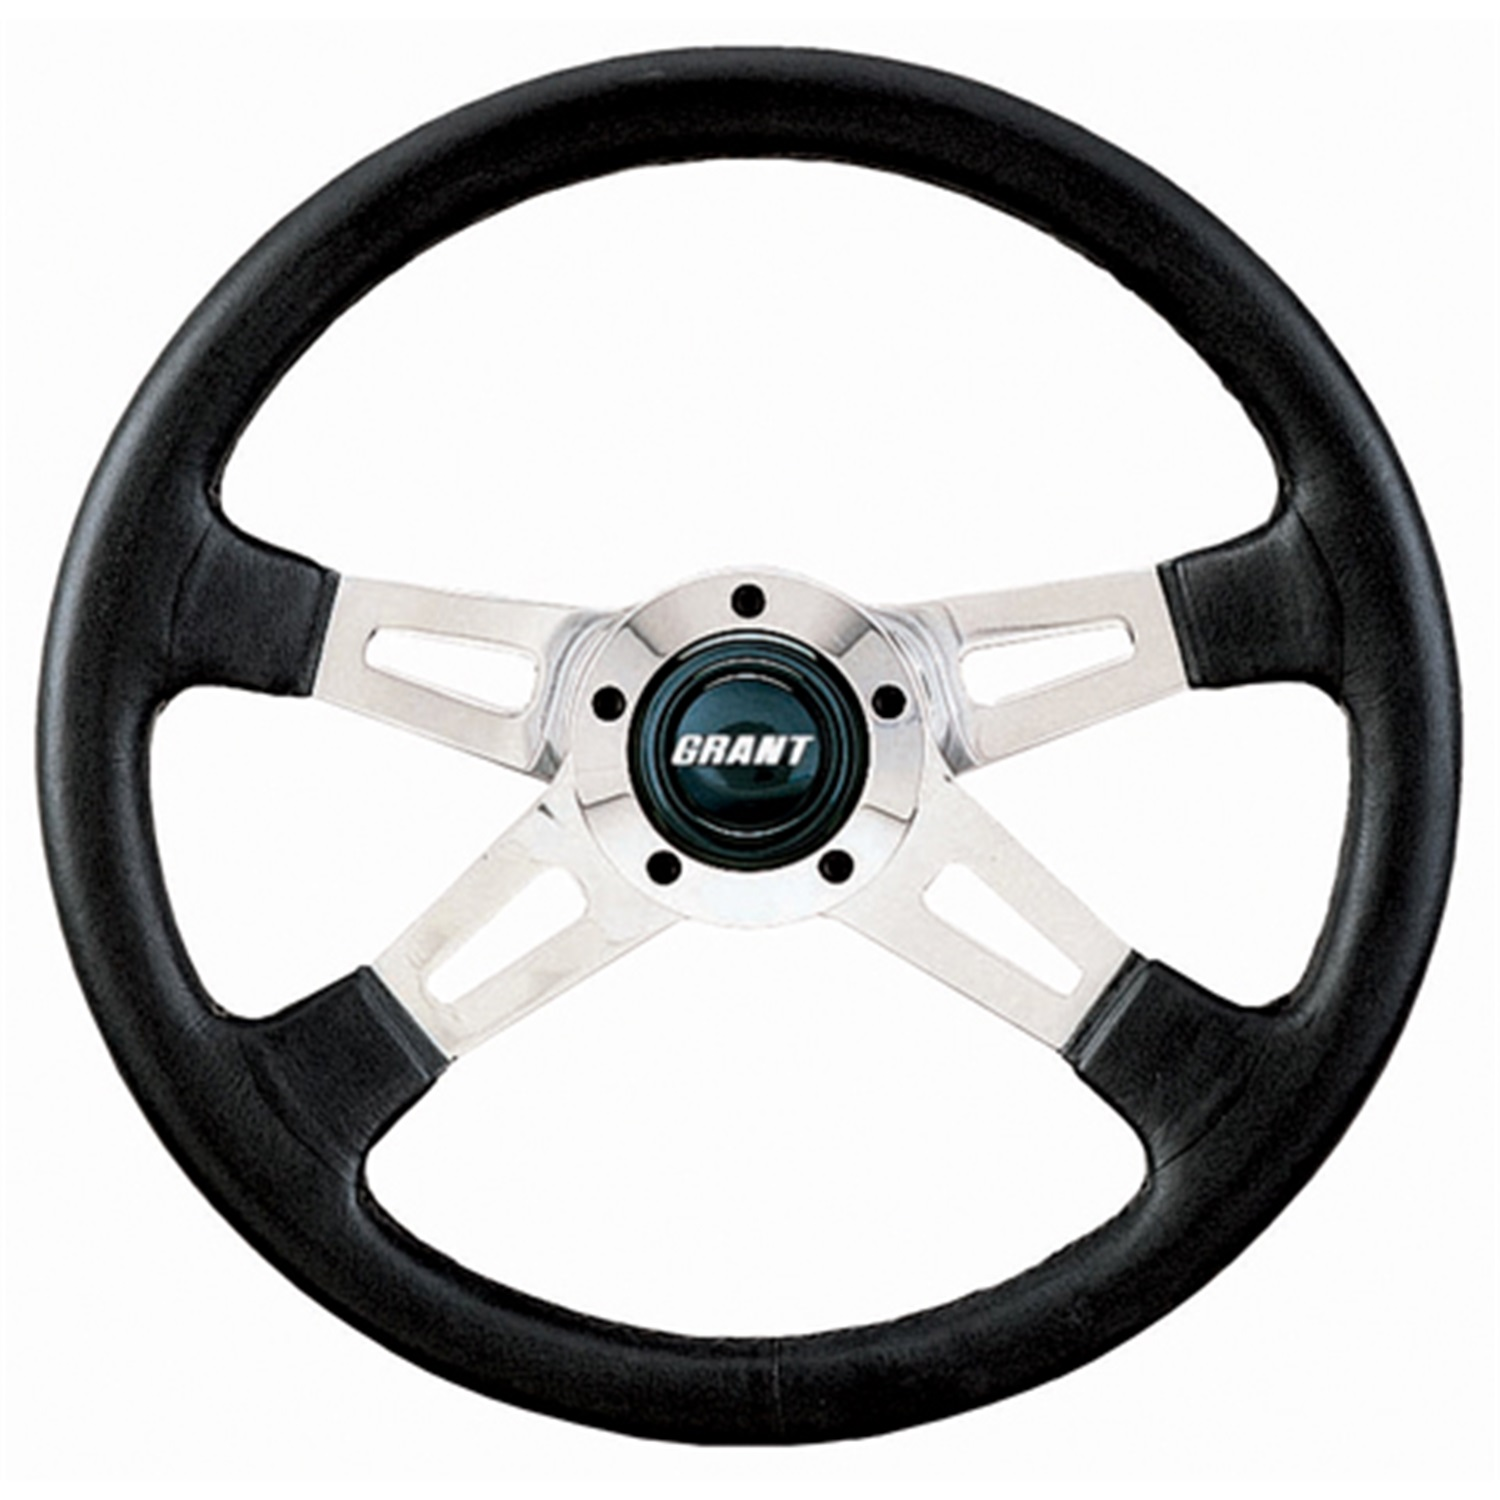 Grant 1180 Collectors Edition Steering Wheel